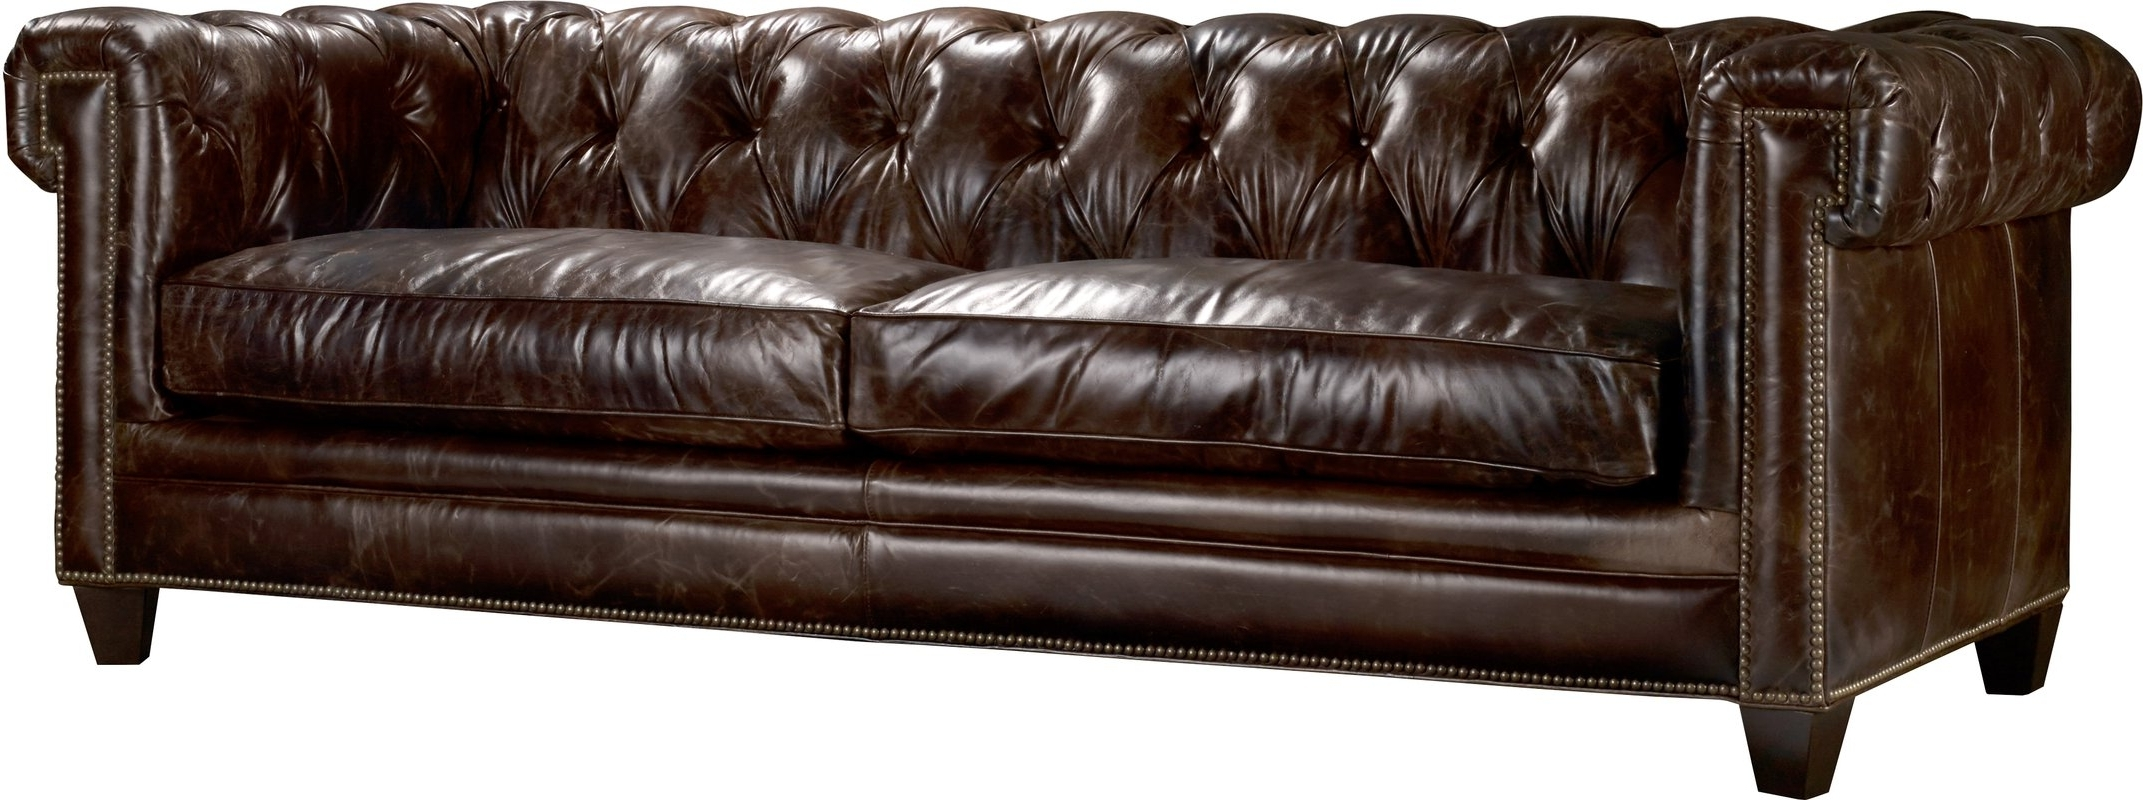 Recent Chesterfield Sofas Pertaining To Hooker Furniture Imperial Regal Stationary Leather Chesterfield (View 11 of 20)